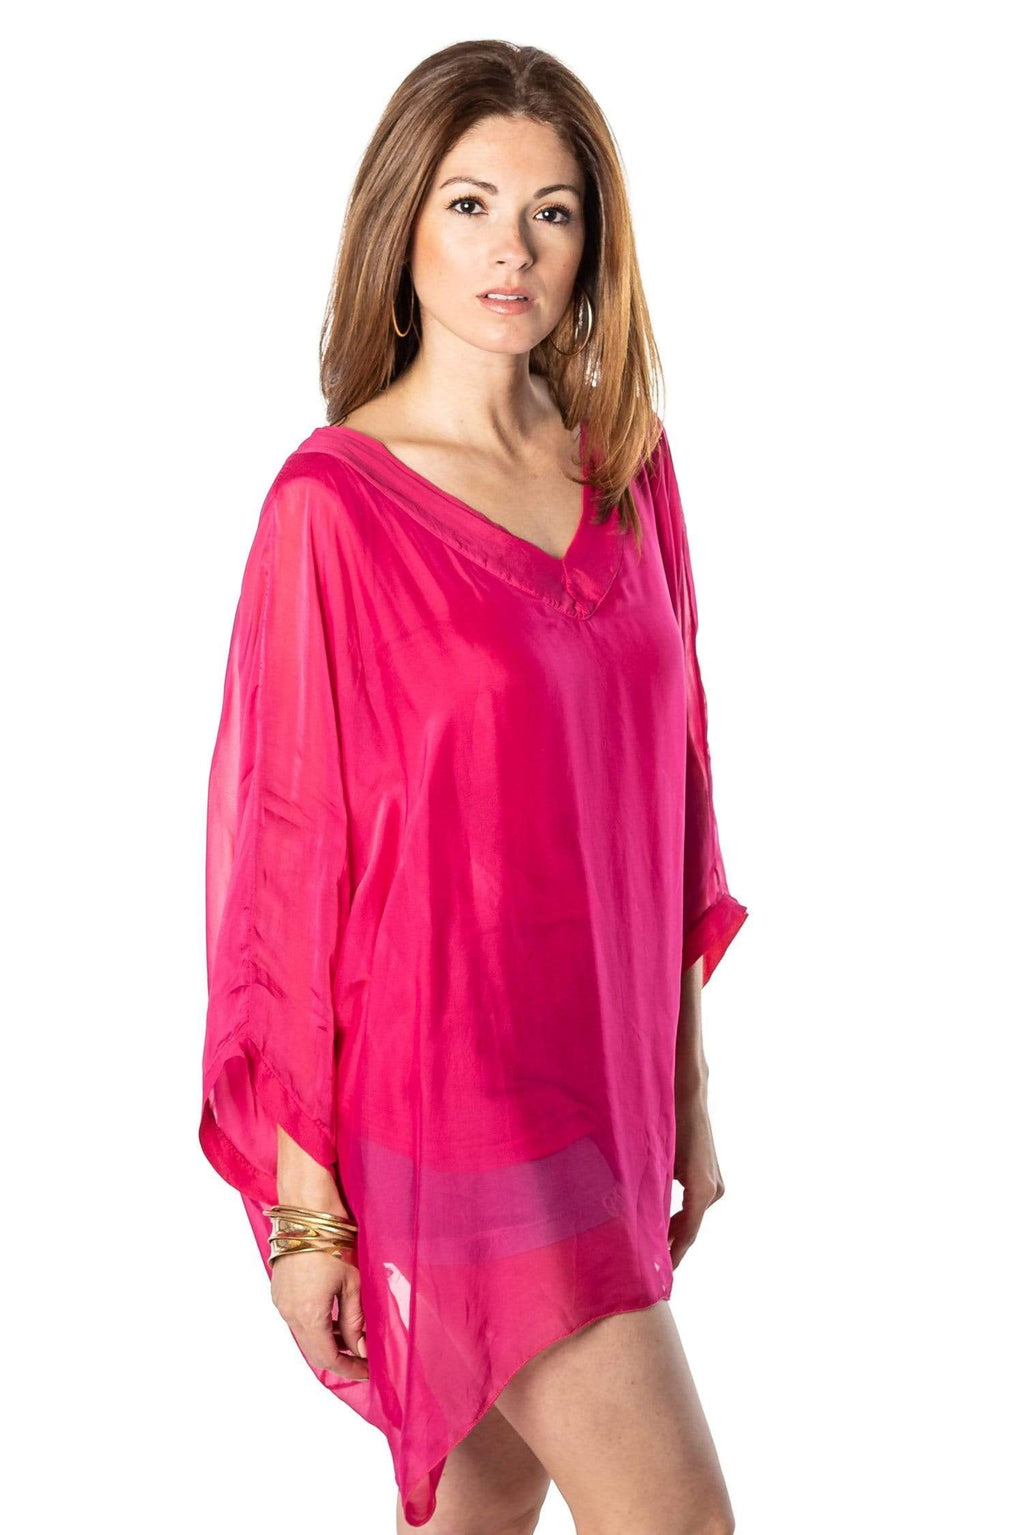 shop-sofia Maya Blouse Sofia Collections Italian Silk Linen Satin